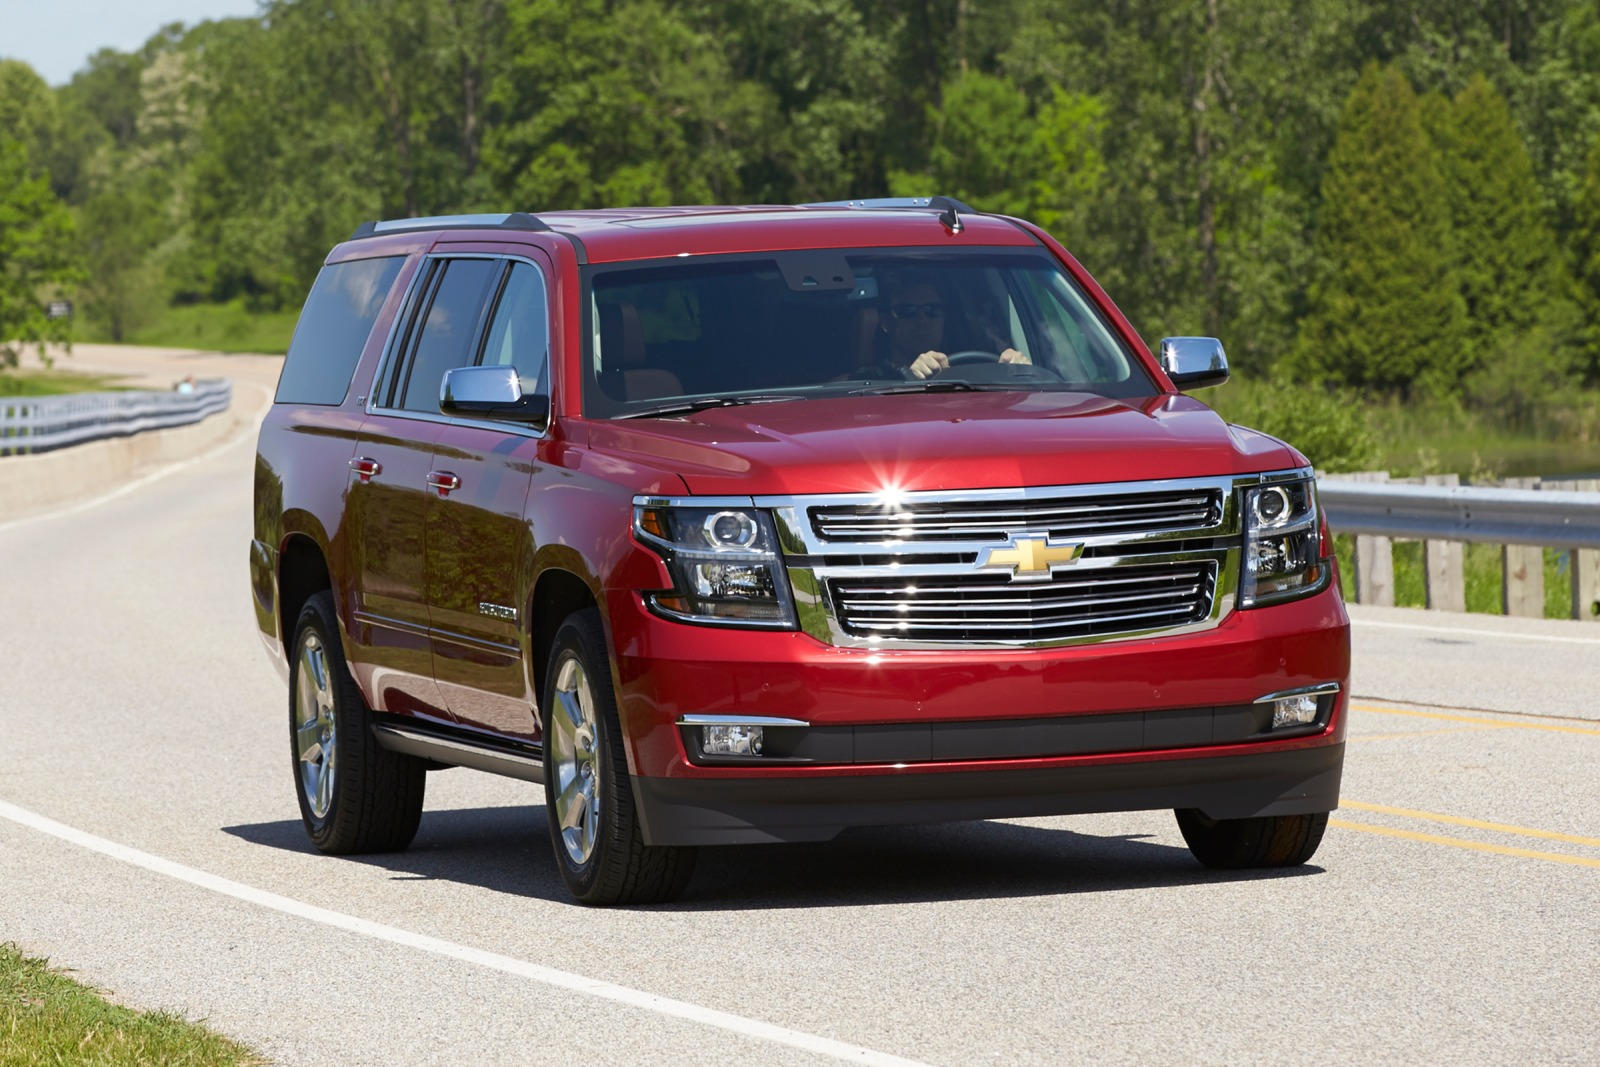 2020 Chevrolet Suburban SUV Front View